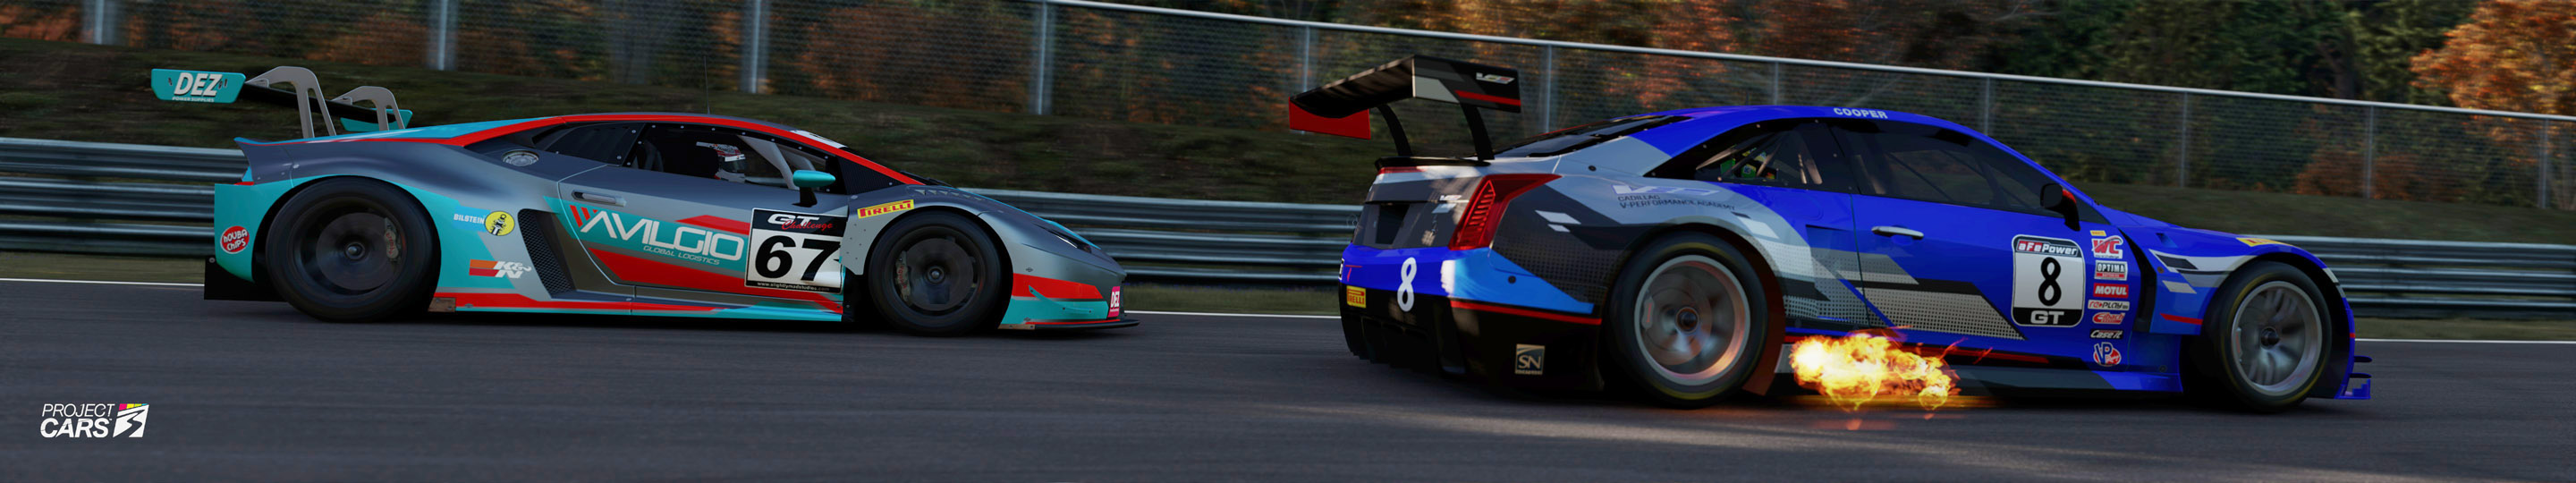 9a PROJECT CARS 3 GT3 at NORDSCHLEIFE copy.jpg